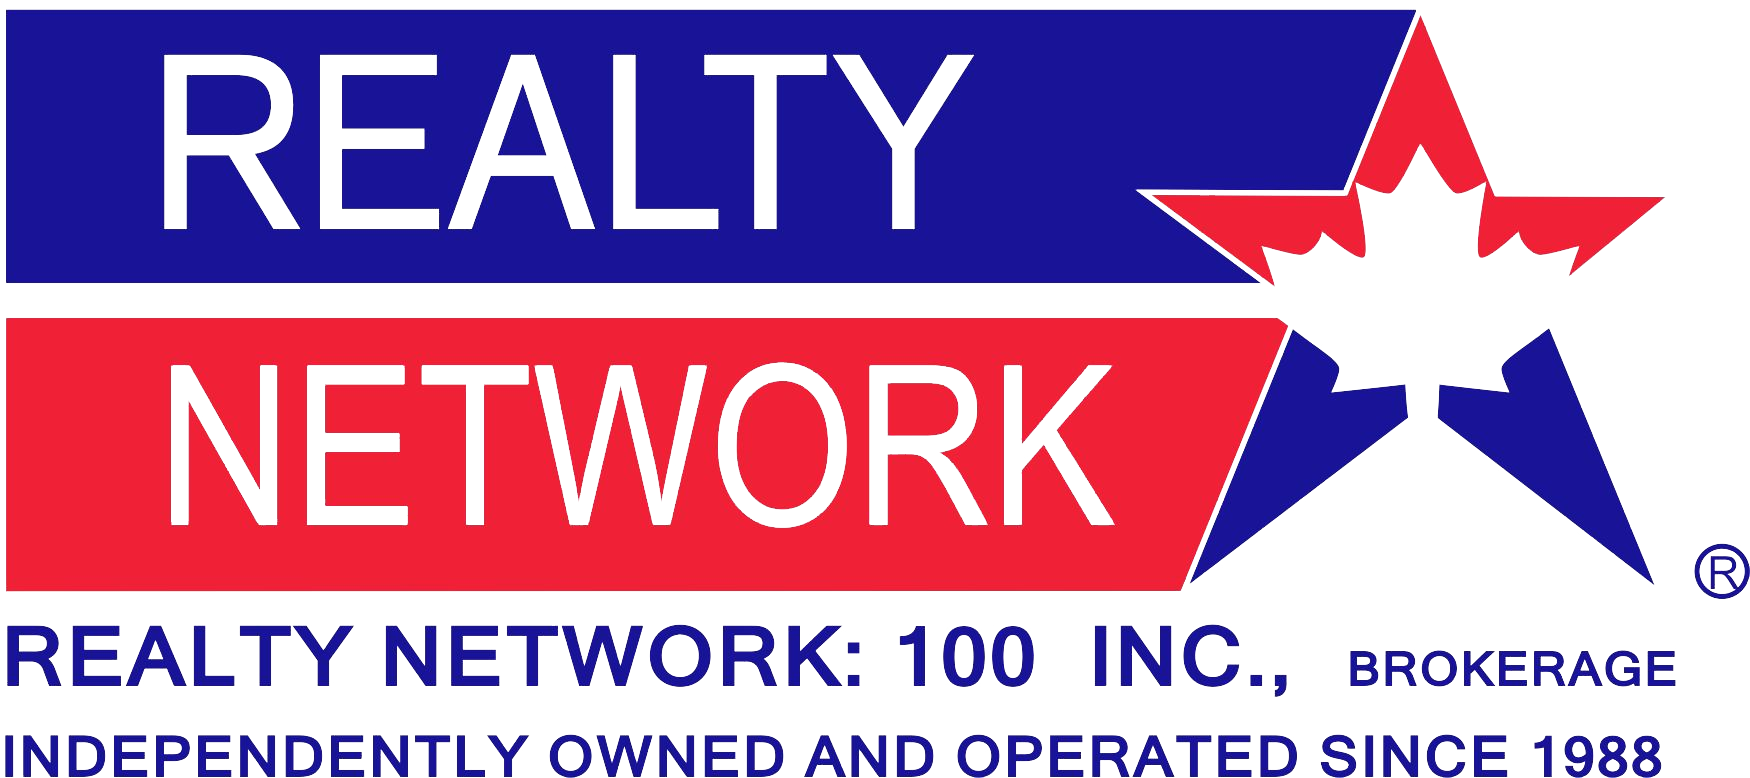 Realty Network: 100 Inc., Brokerage *